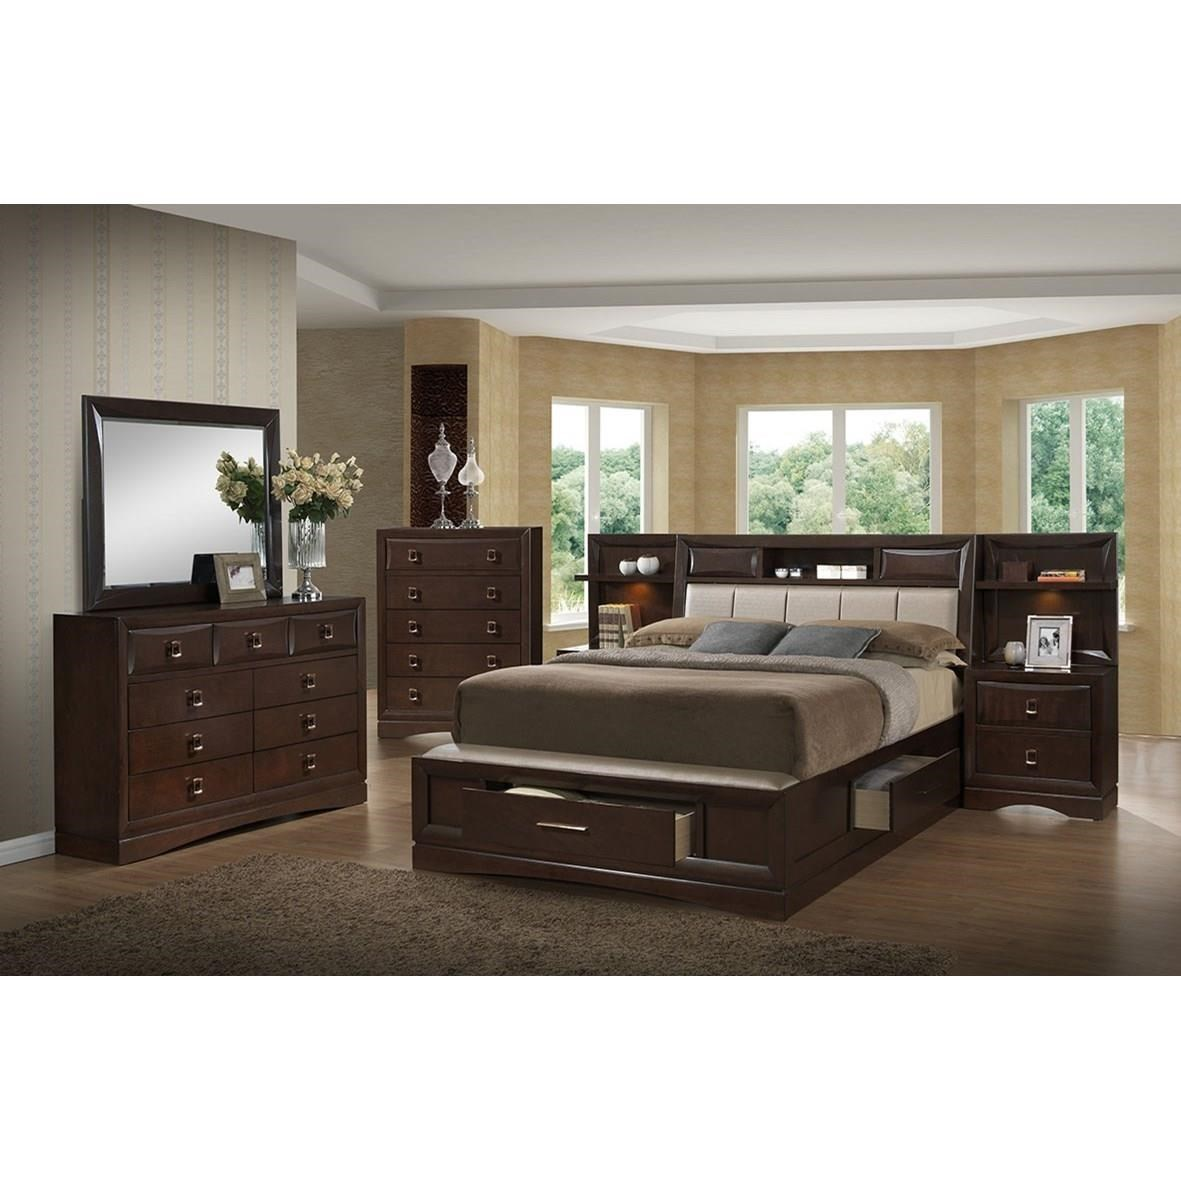 Delightful Holland House FranklinQueen 4 Piece Bedroom Group